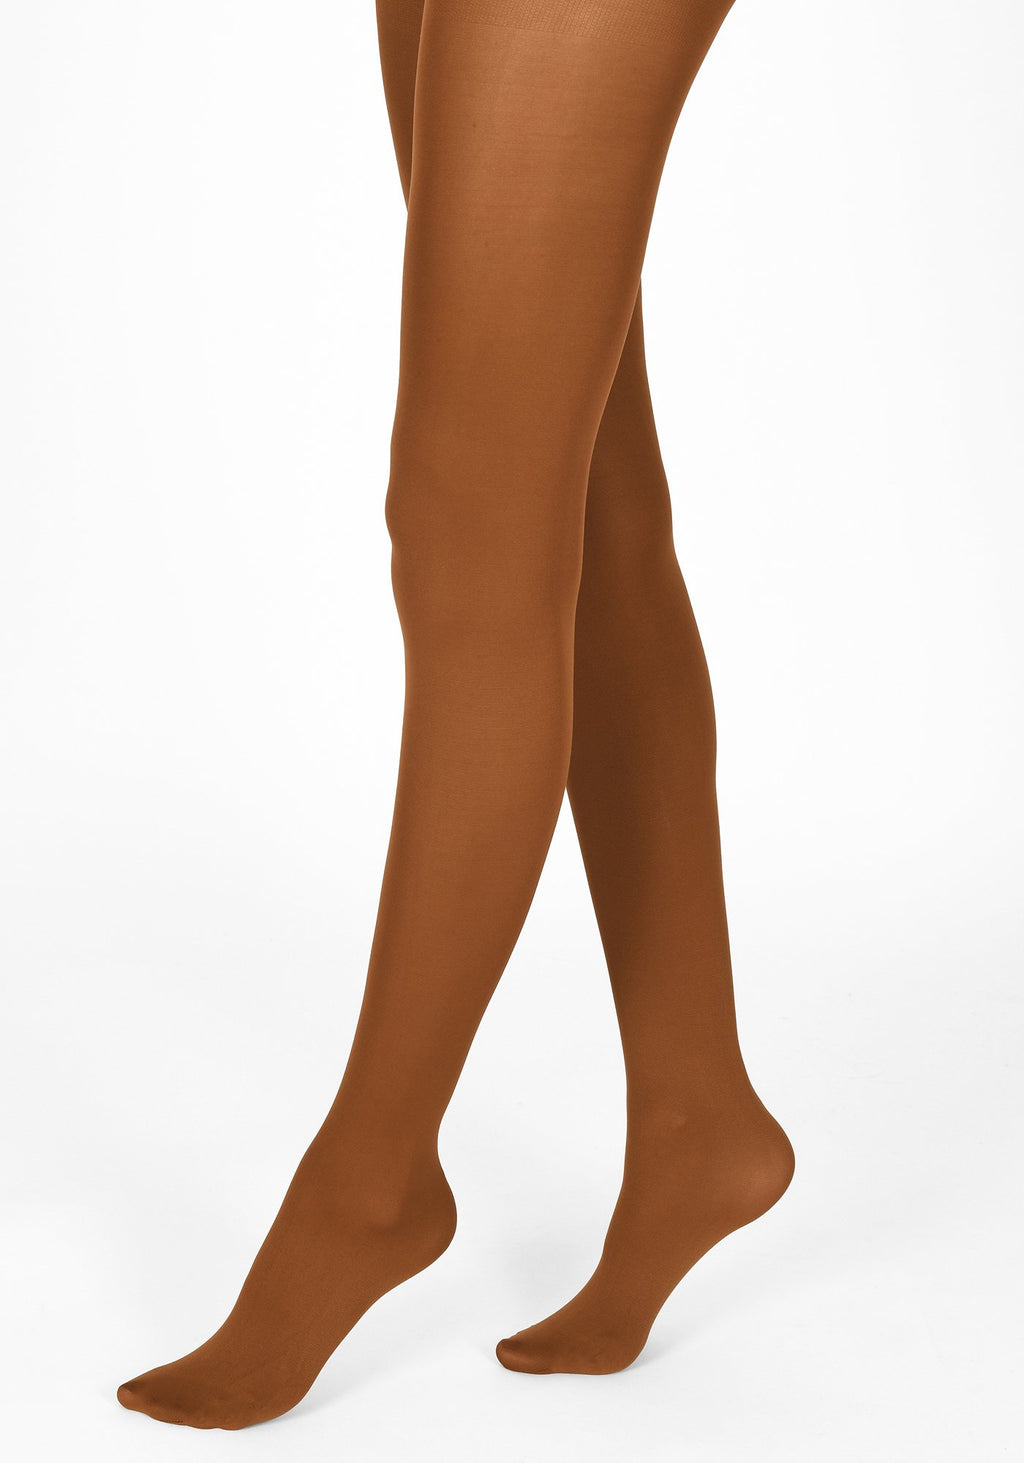 cinnamon tights 60 denier 1